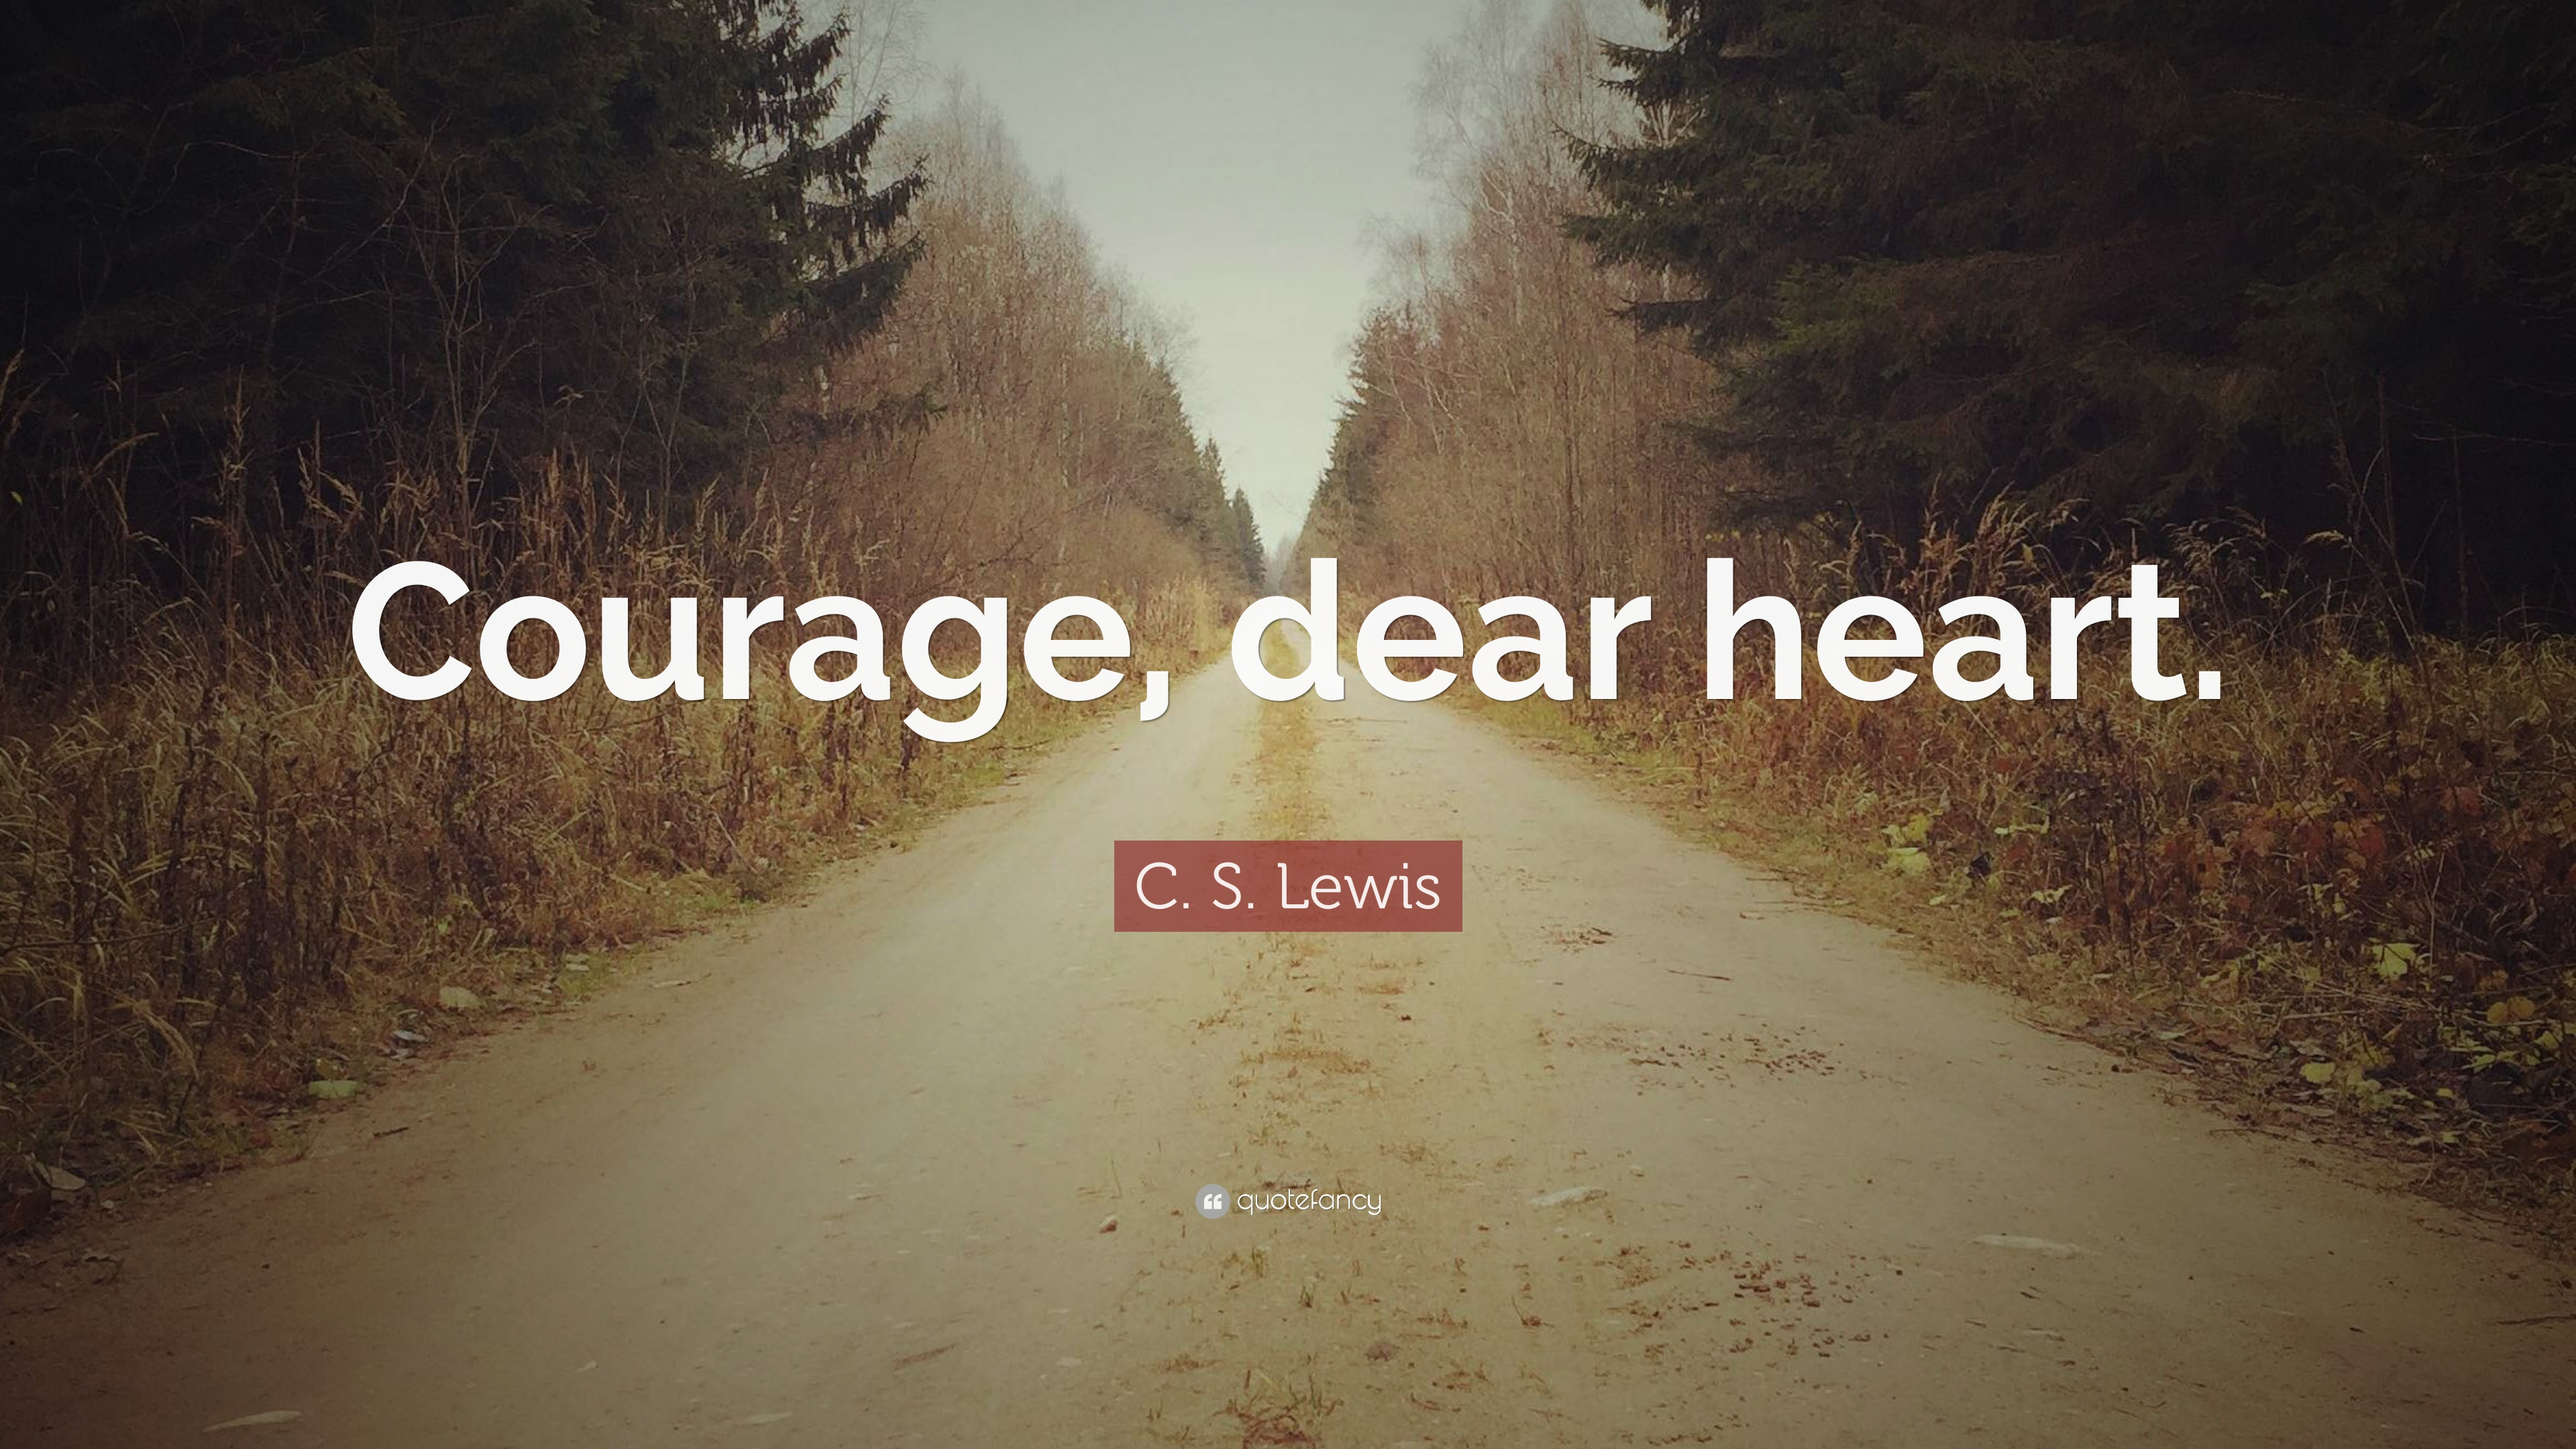 Motivational Quotes Computer Backgrounds Wallpapers C S Lewis Quote Courage Dear Heart 9 Wallpapers